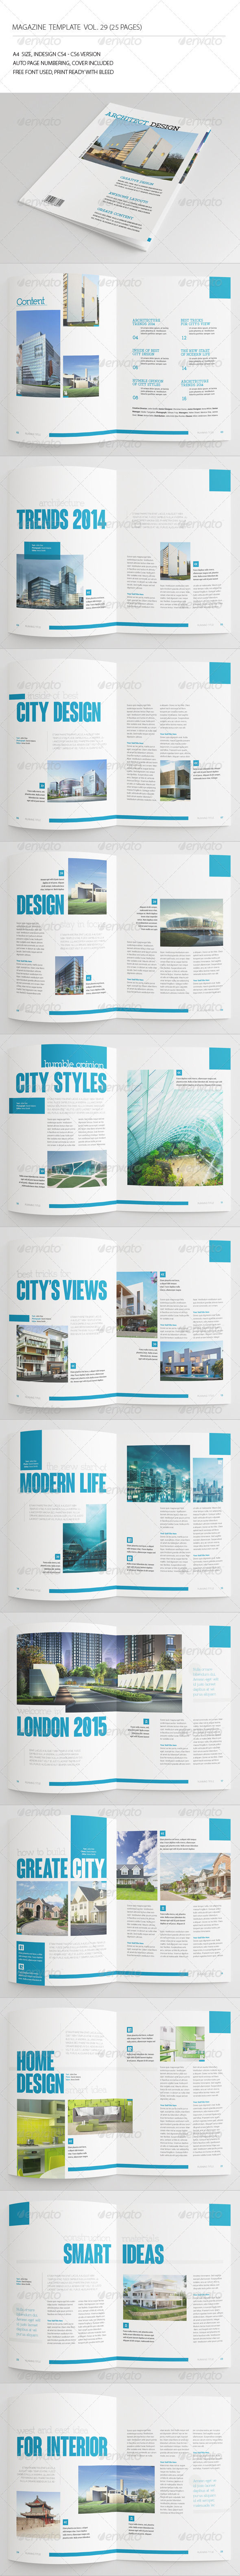 25 Pages Architecture Magazine Vol29 - Magazines Print Templates